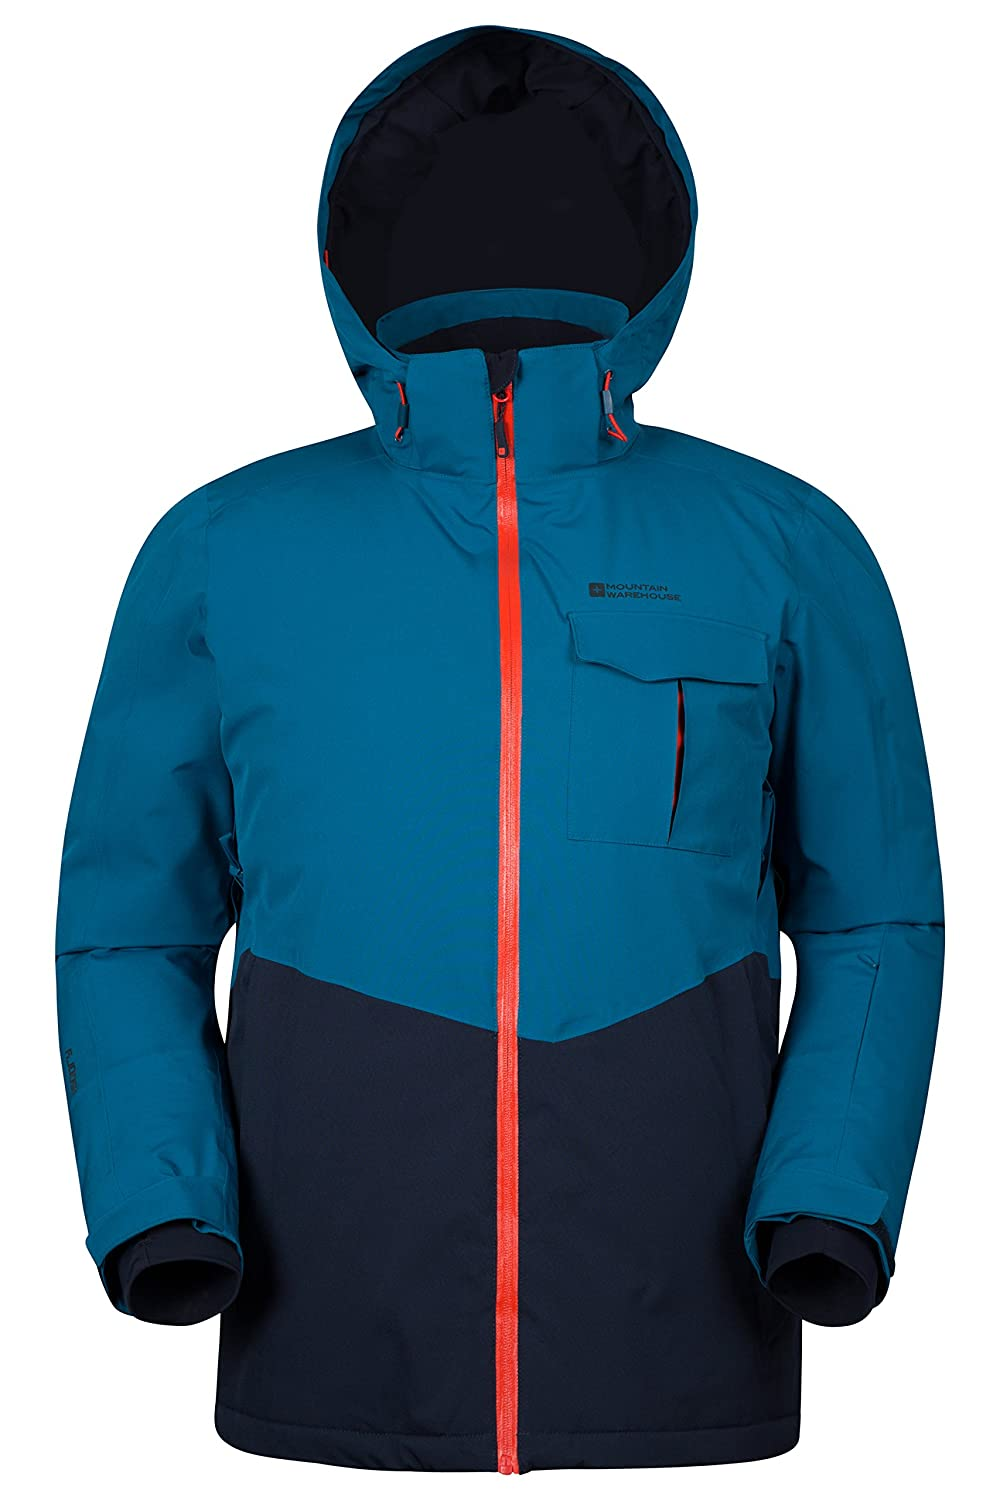 Mountain Warehouse Atmosphere Extreme Men's Ski Jacket - Waterproof, Taped Seams, Breathable IsoDry Fabric with RECCO Reflectors & Detachable Snow Skirt Navy Small 024584034003